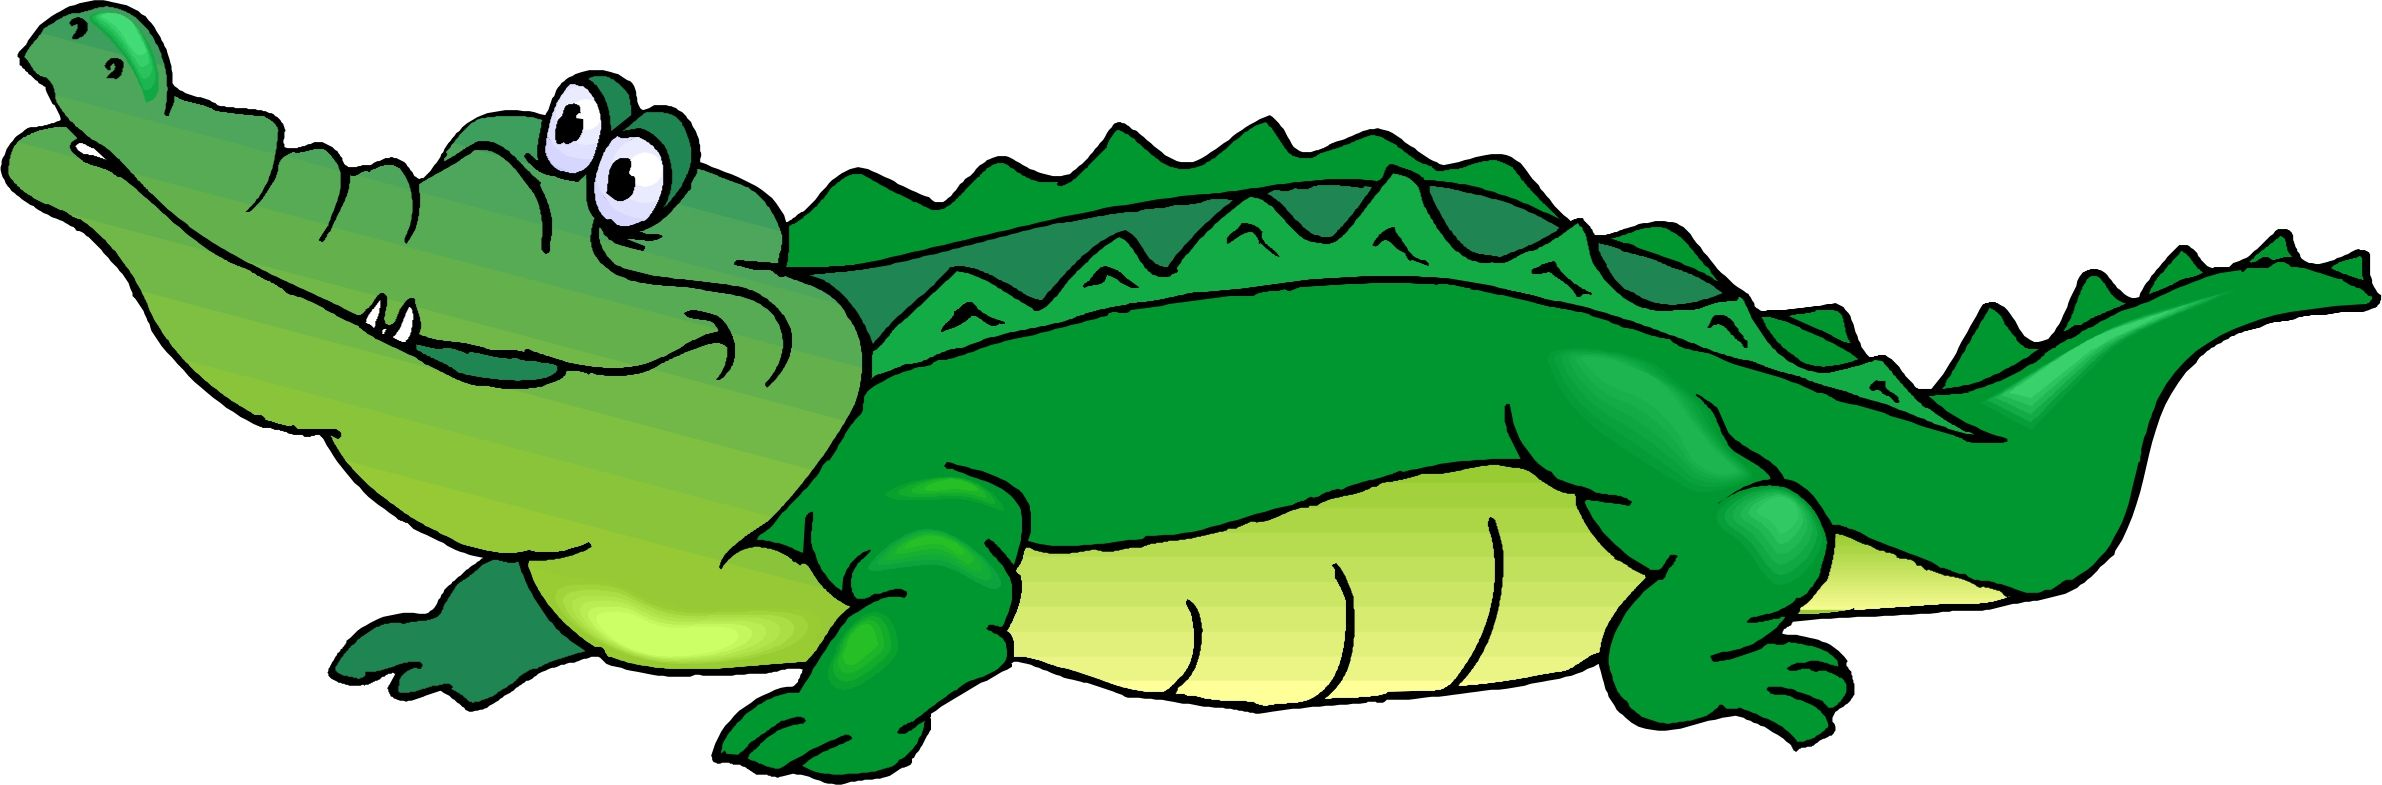 Gator clip art use. Alligator clipart graphic free download